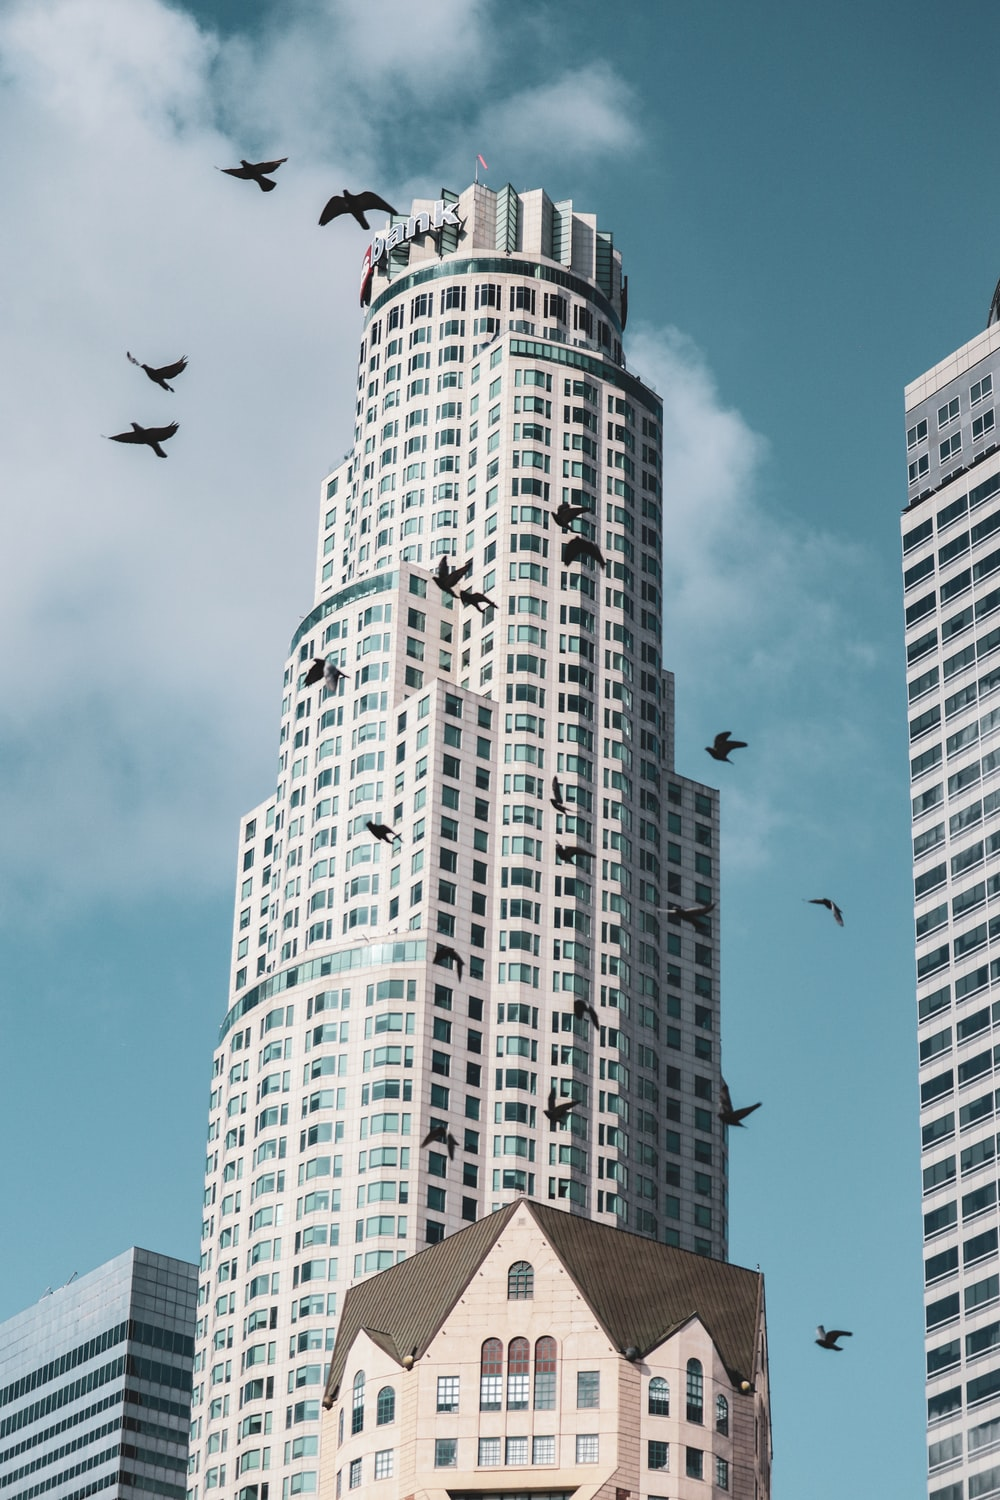 low angle photography of three birds flying over high rise building during daytime